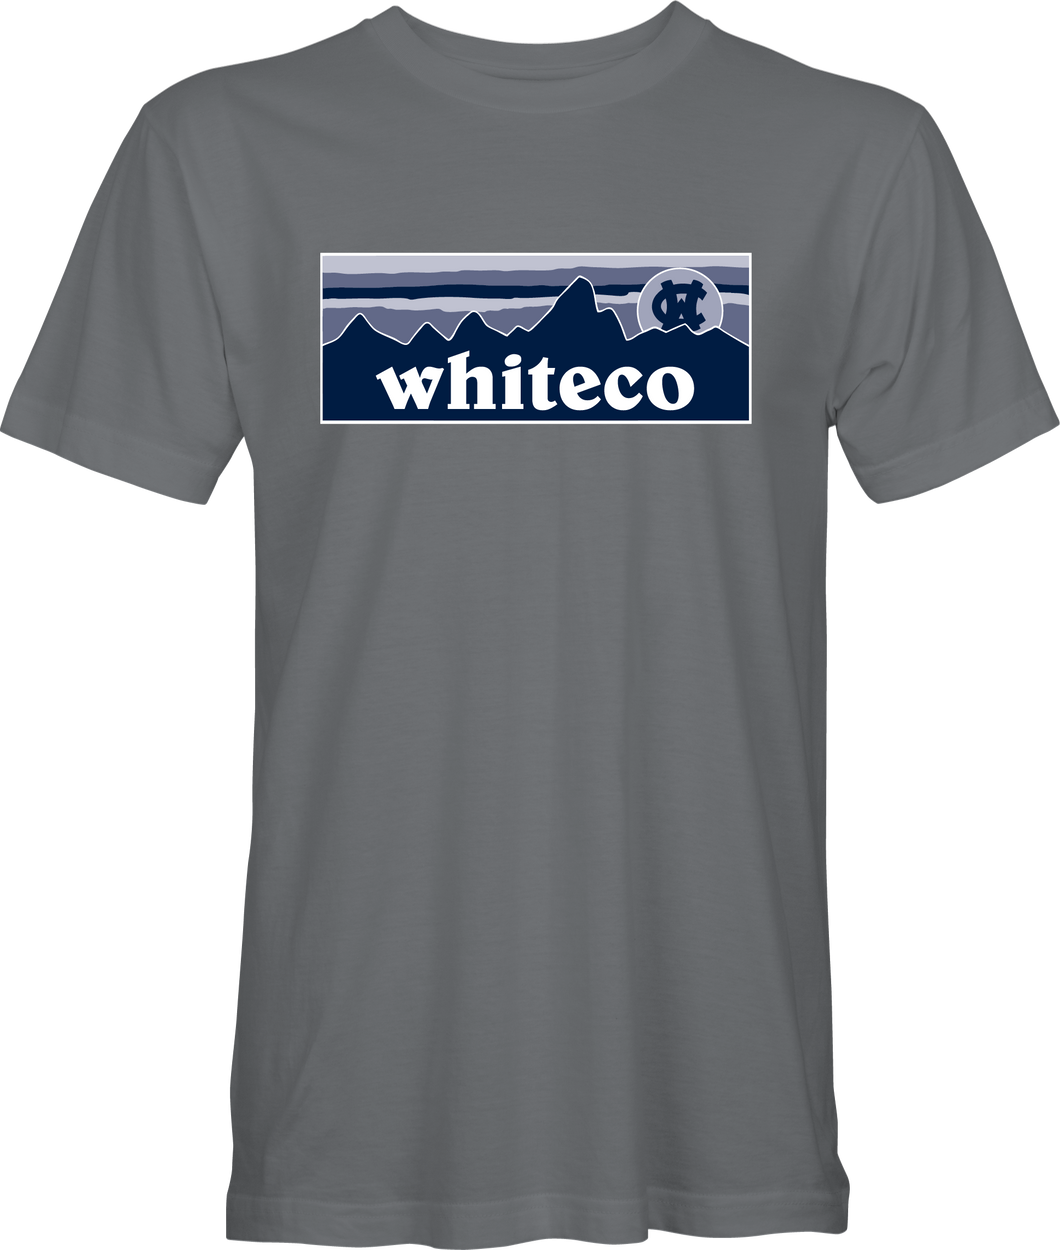 WhiteCo Comfort Colors Tee